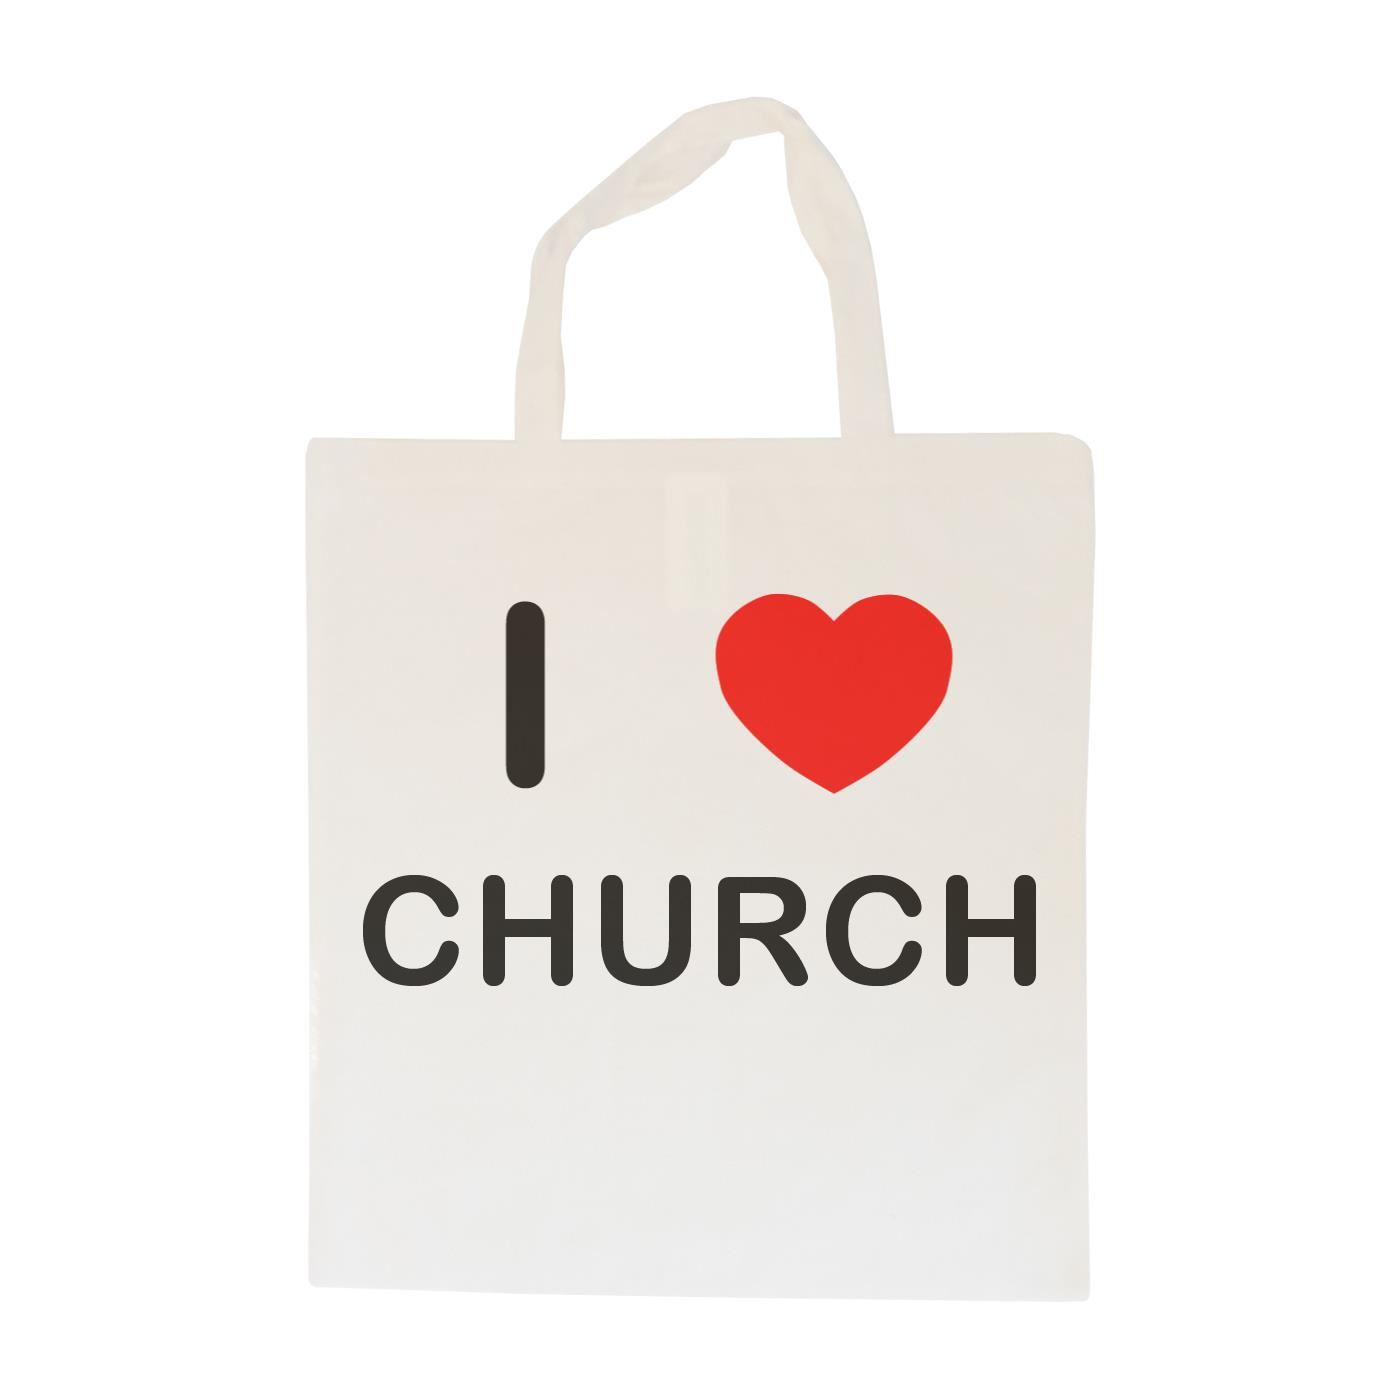 I Love Church - Cotton Bag | Size choice Tote, Shopper or Sling